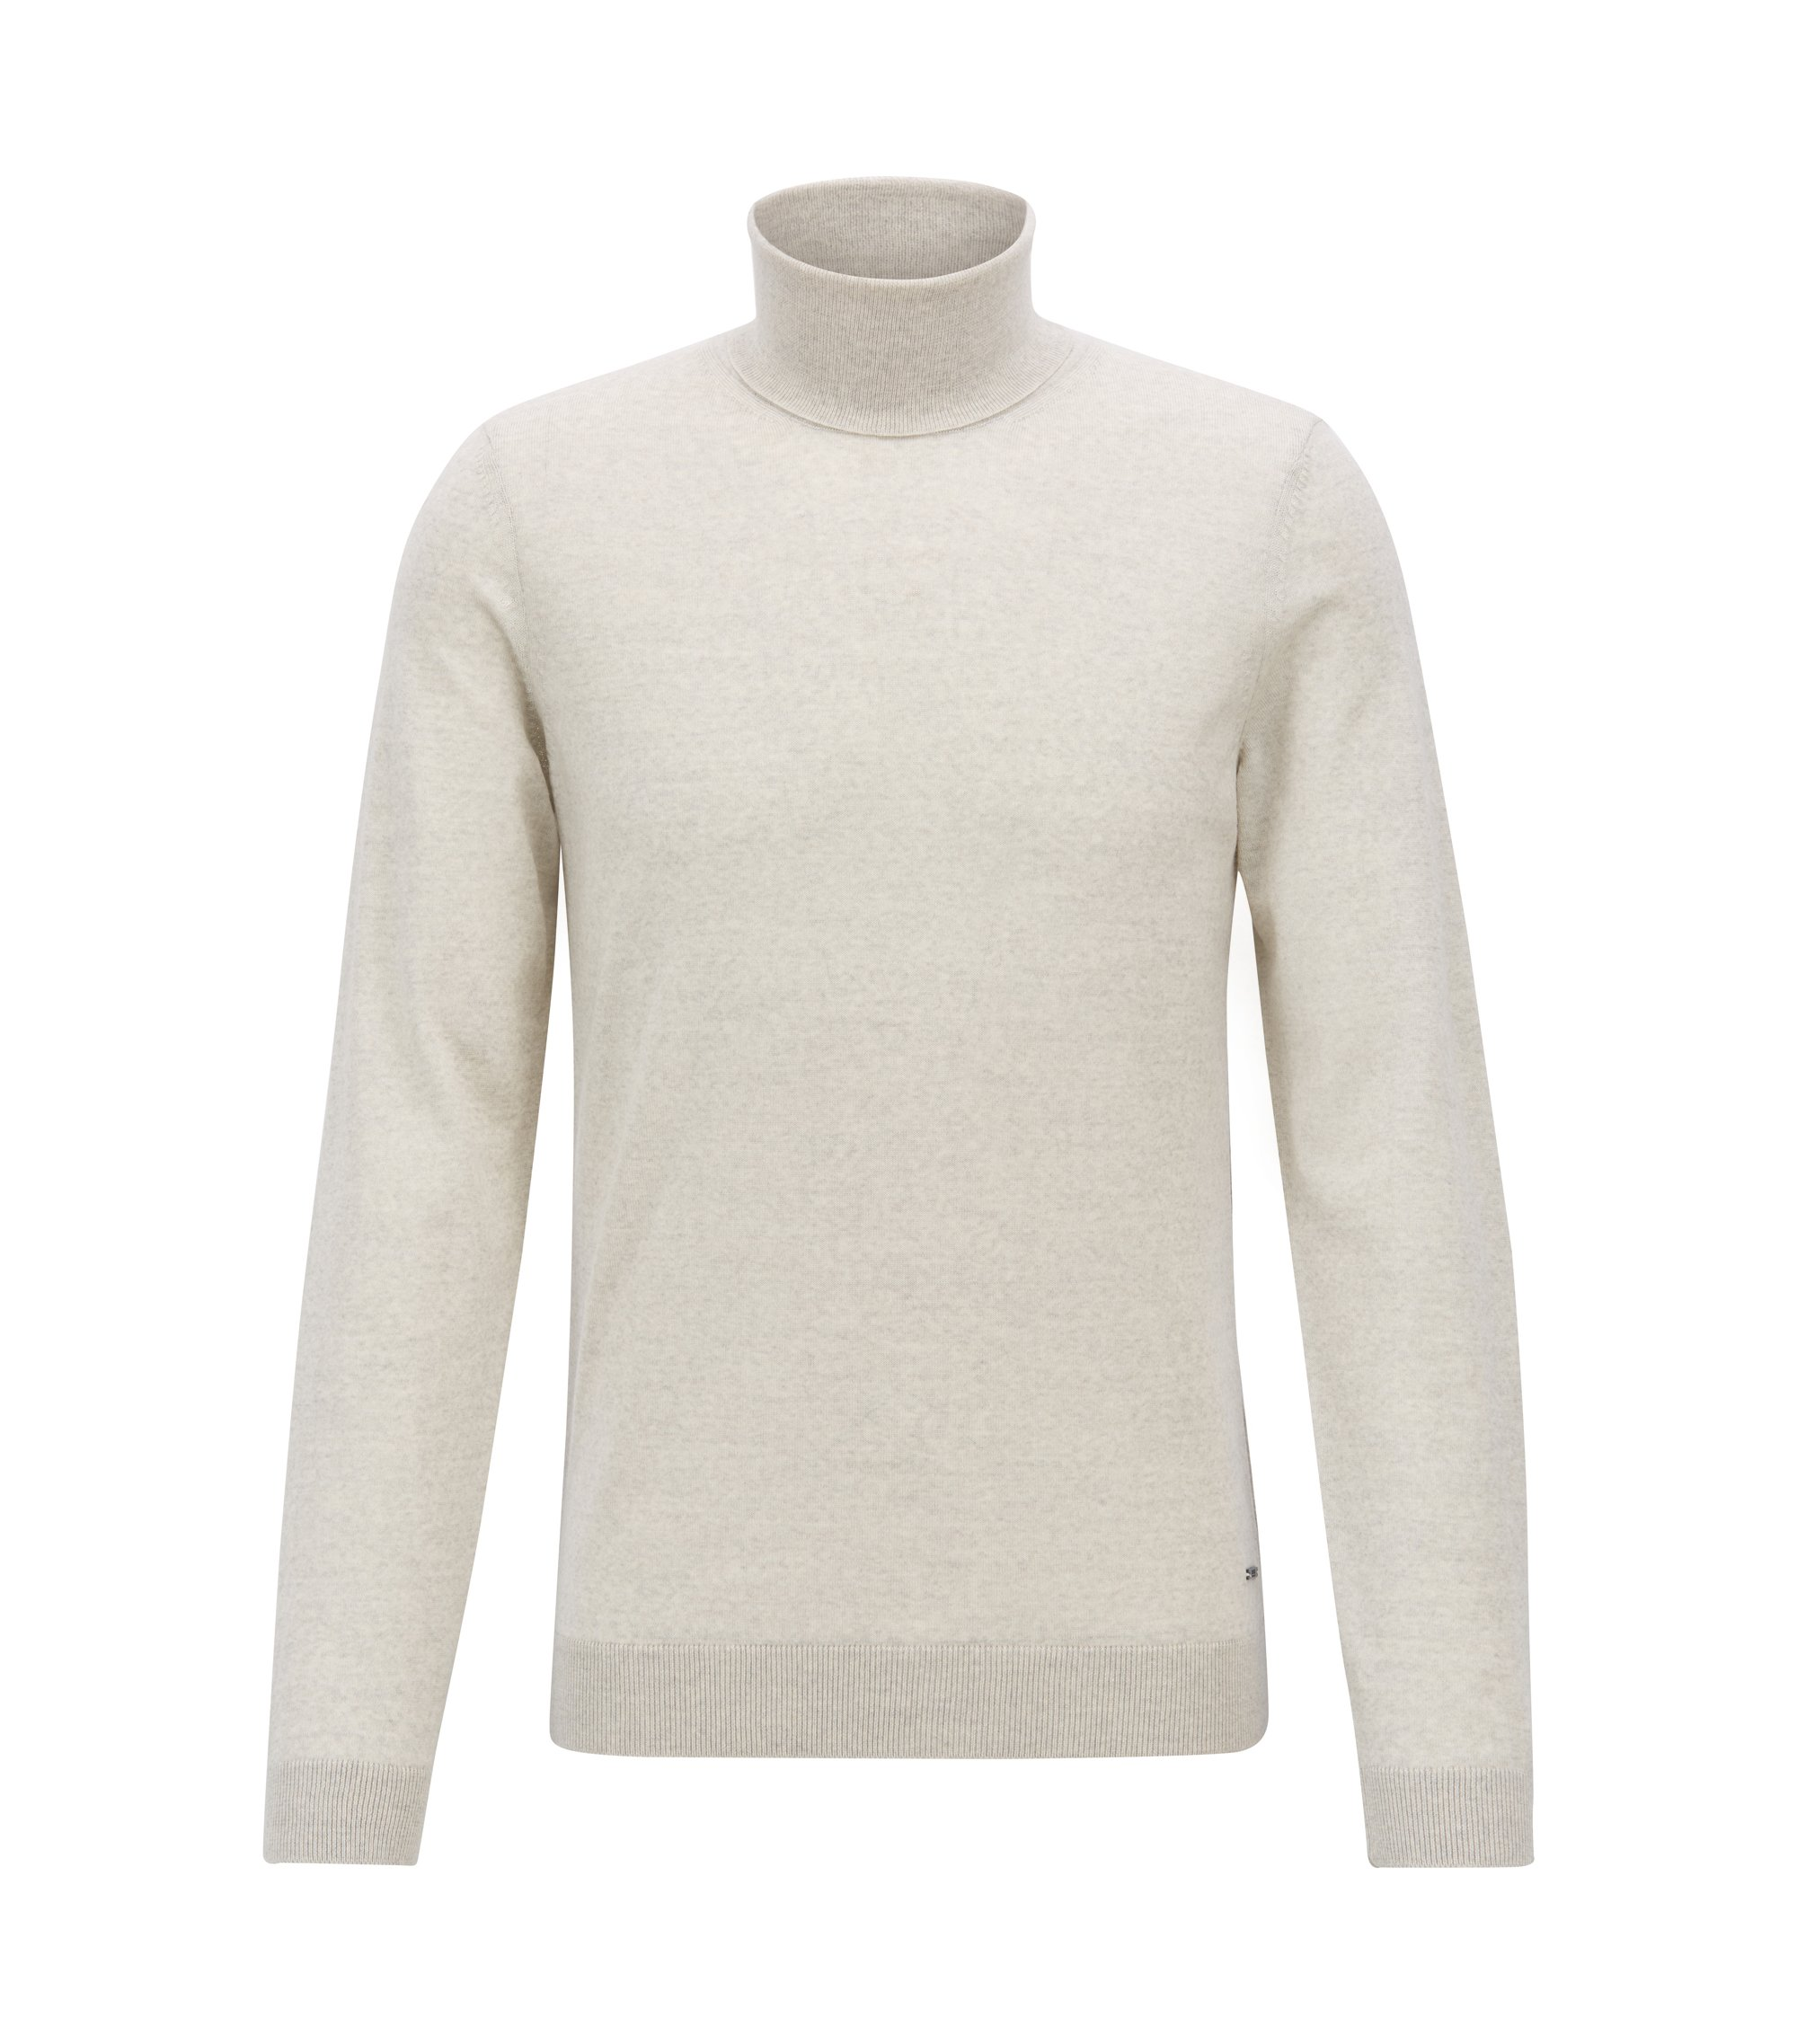 Turtleneck sweater in extra-fine Italian merino wool, Light Beige